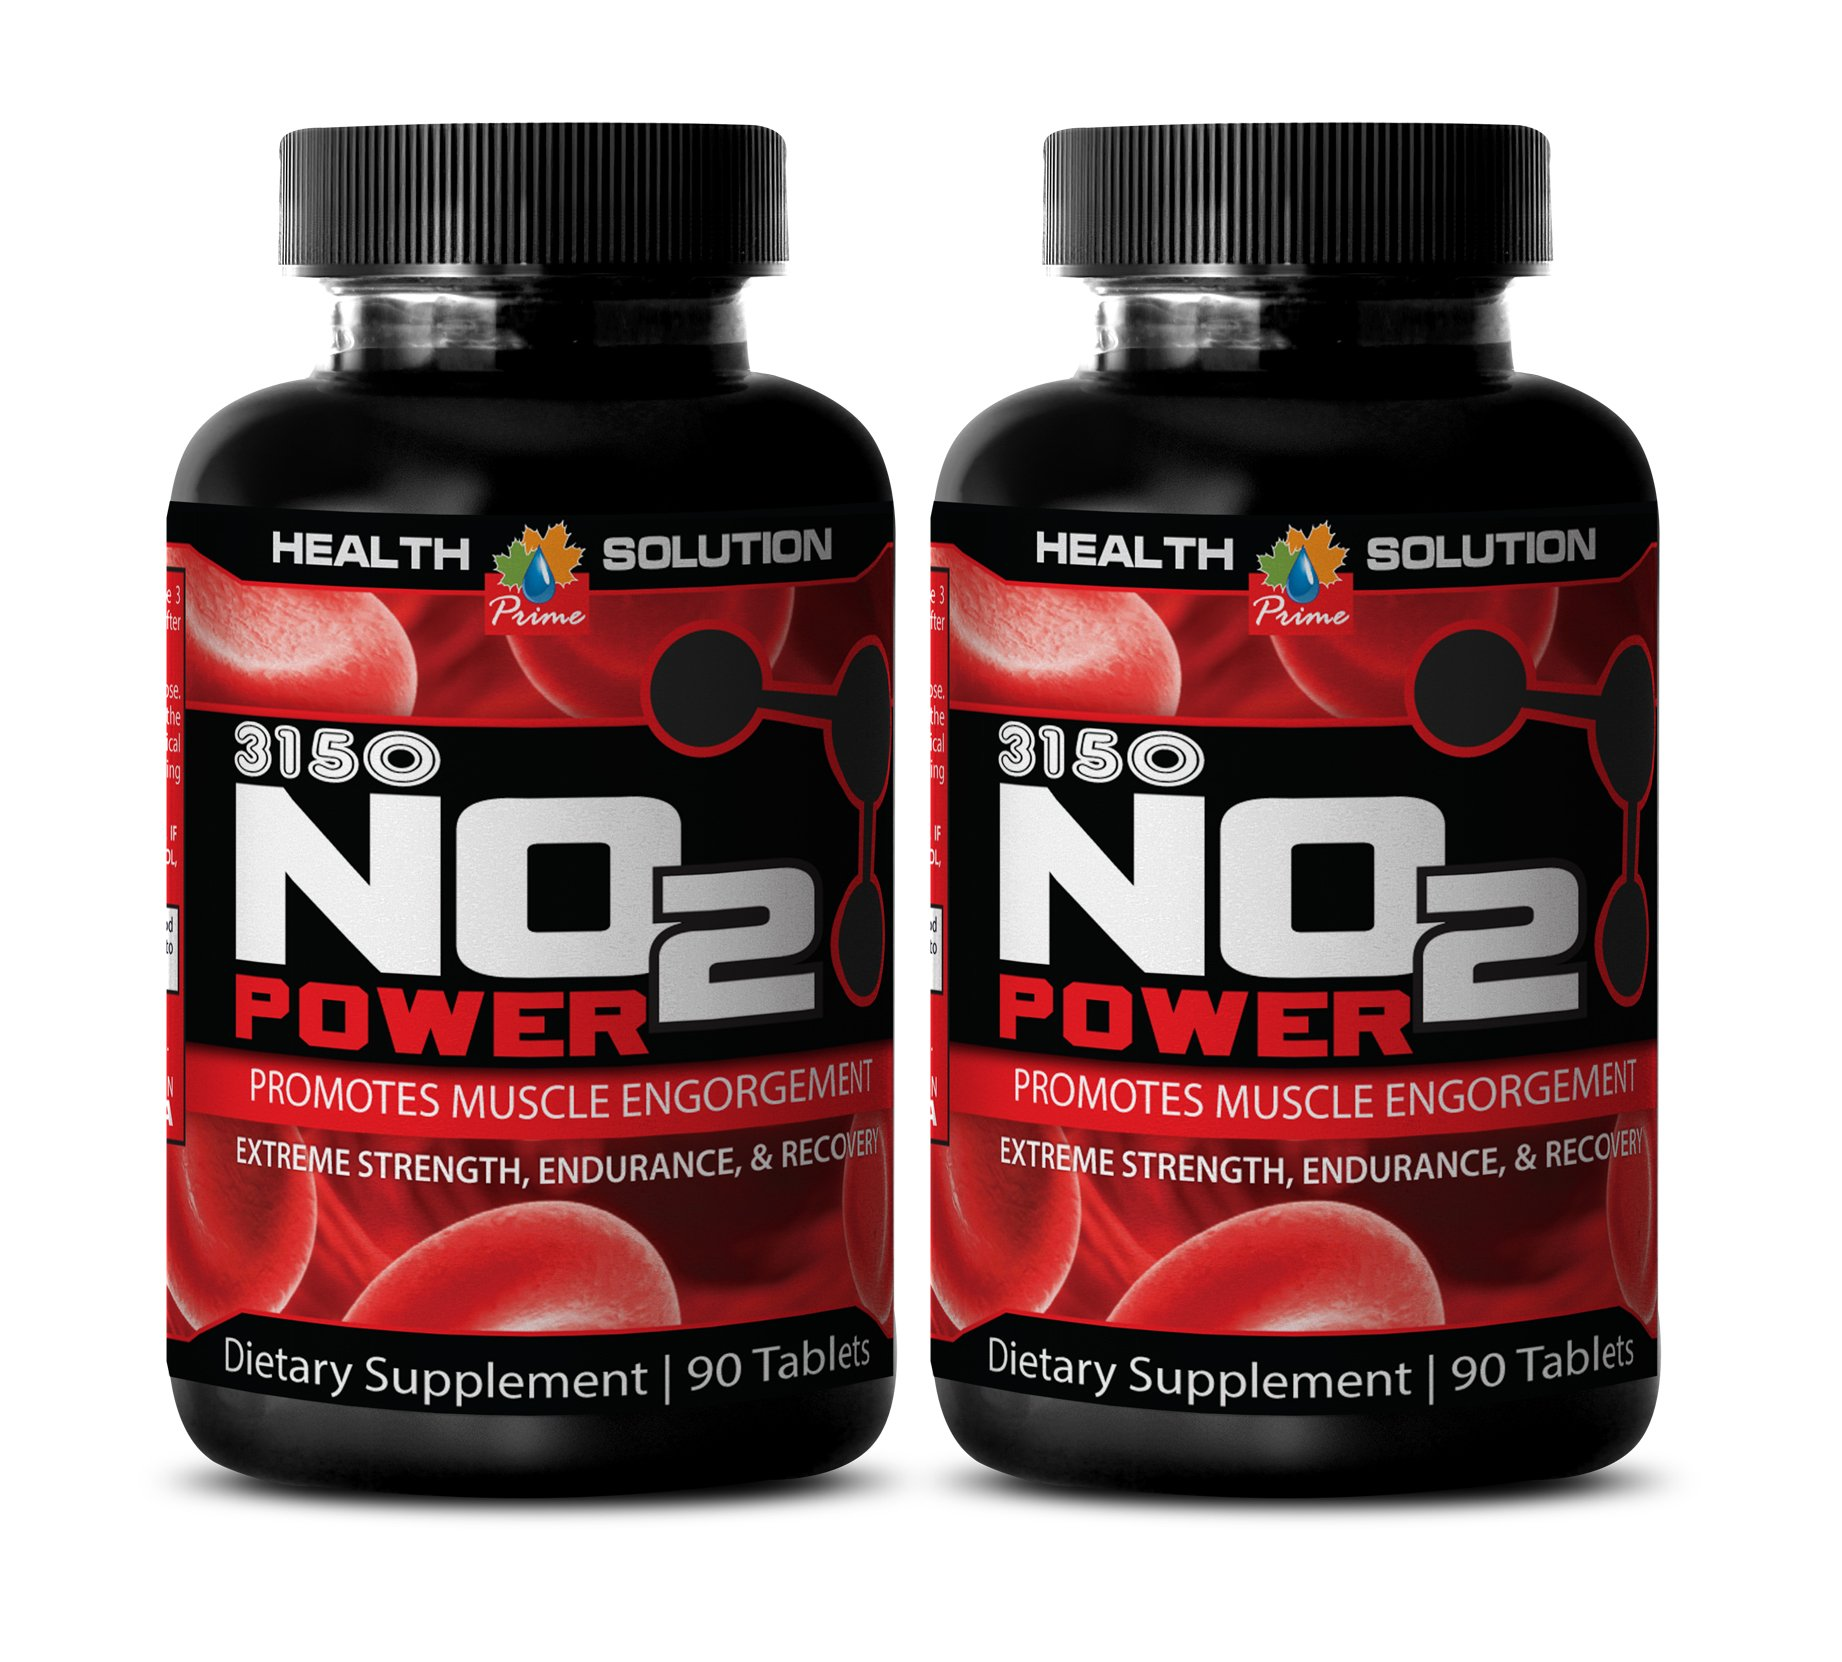 Muscle gainer - PREMIUM NATURAL NITRIC OXIDE 3150MG - Nitric oxide dietary supplement - 2 Bottle (180 Capsules)